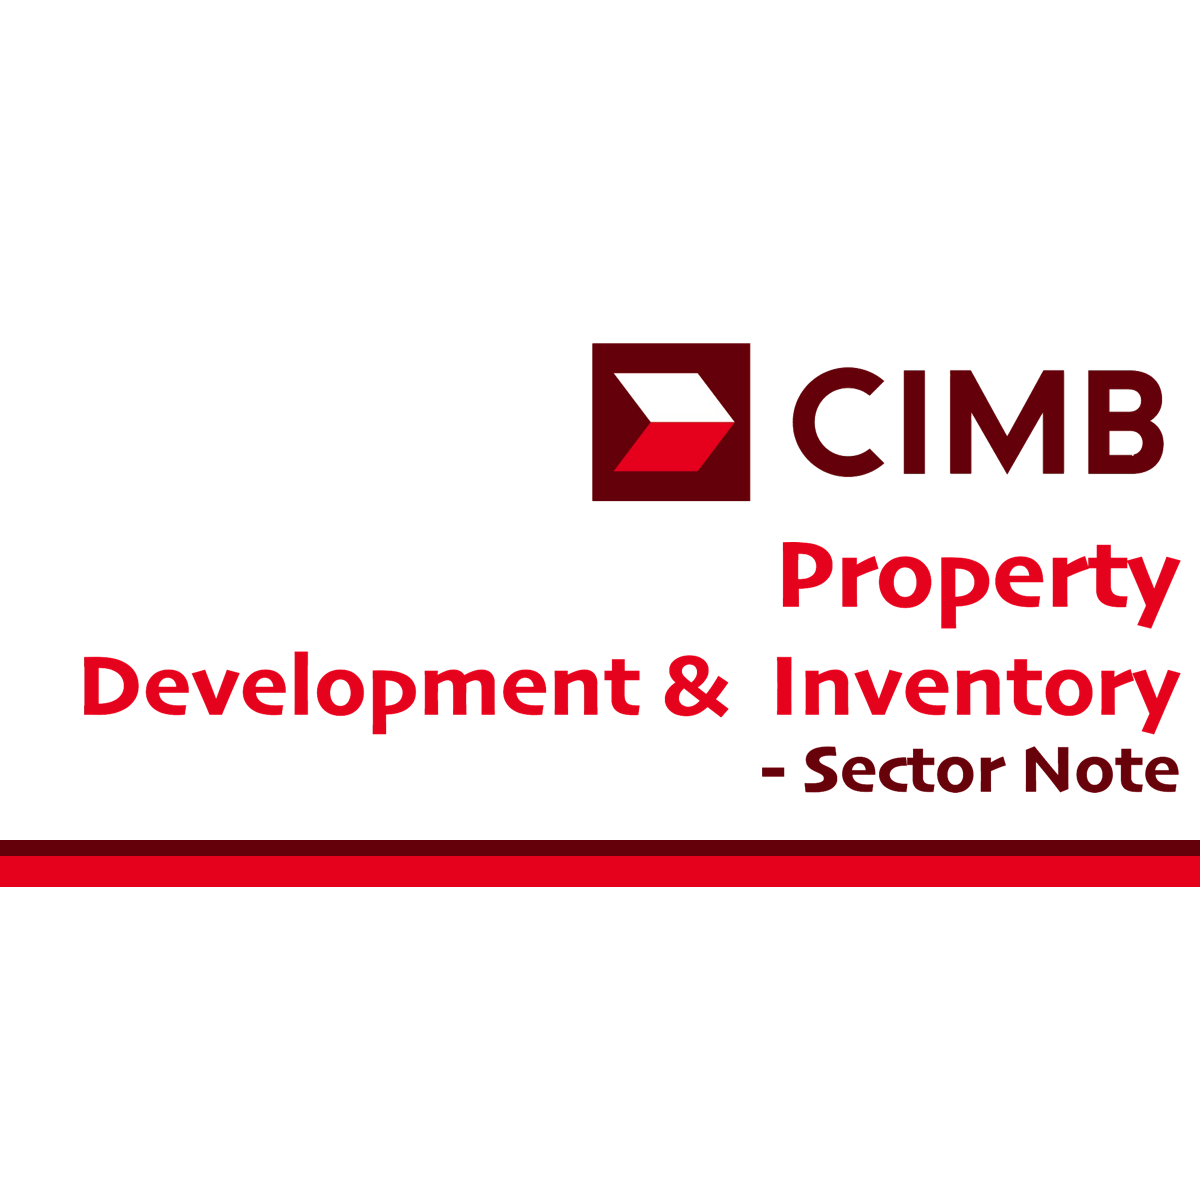 Property Devt & Invt - CIMB Research 2016-11-09: Record bid for Central Boulevard site